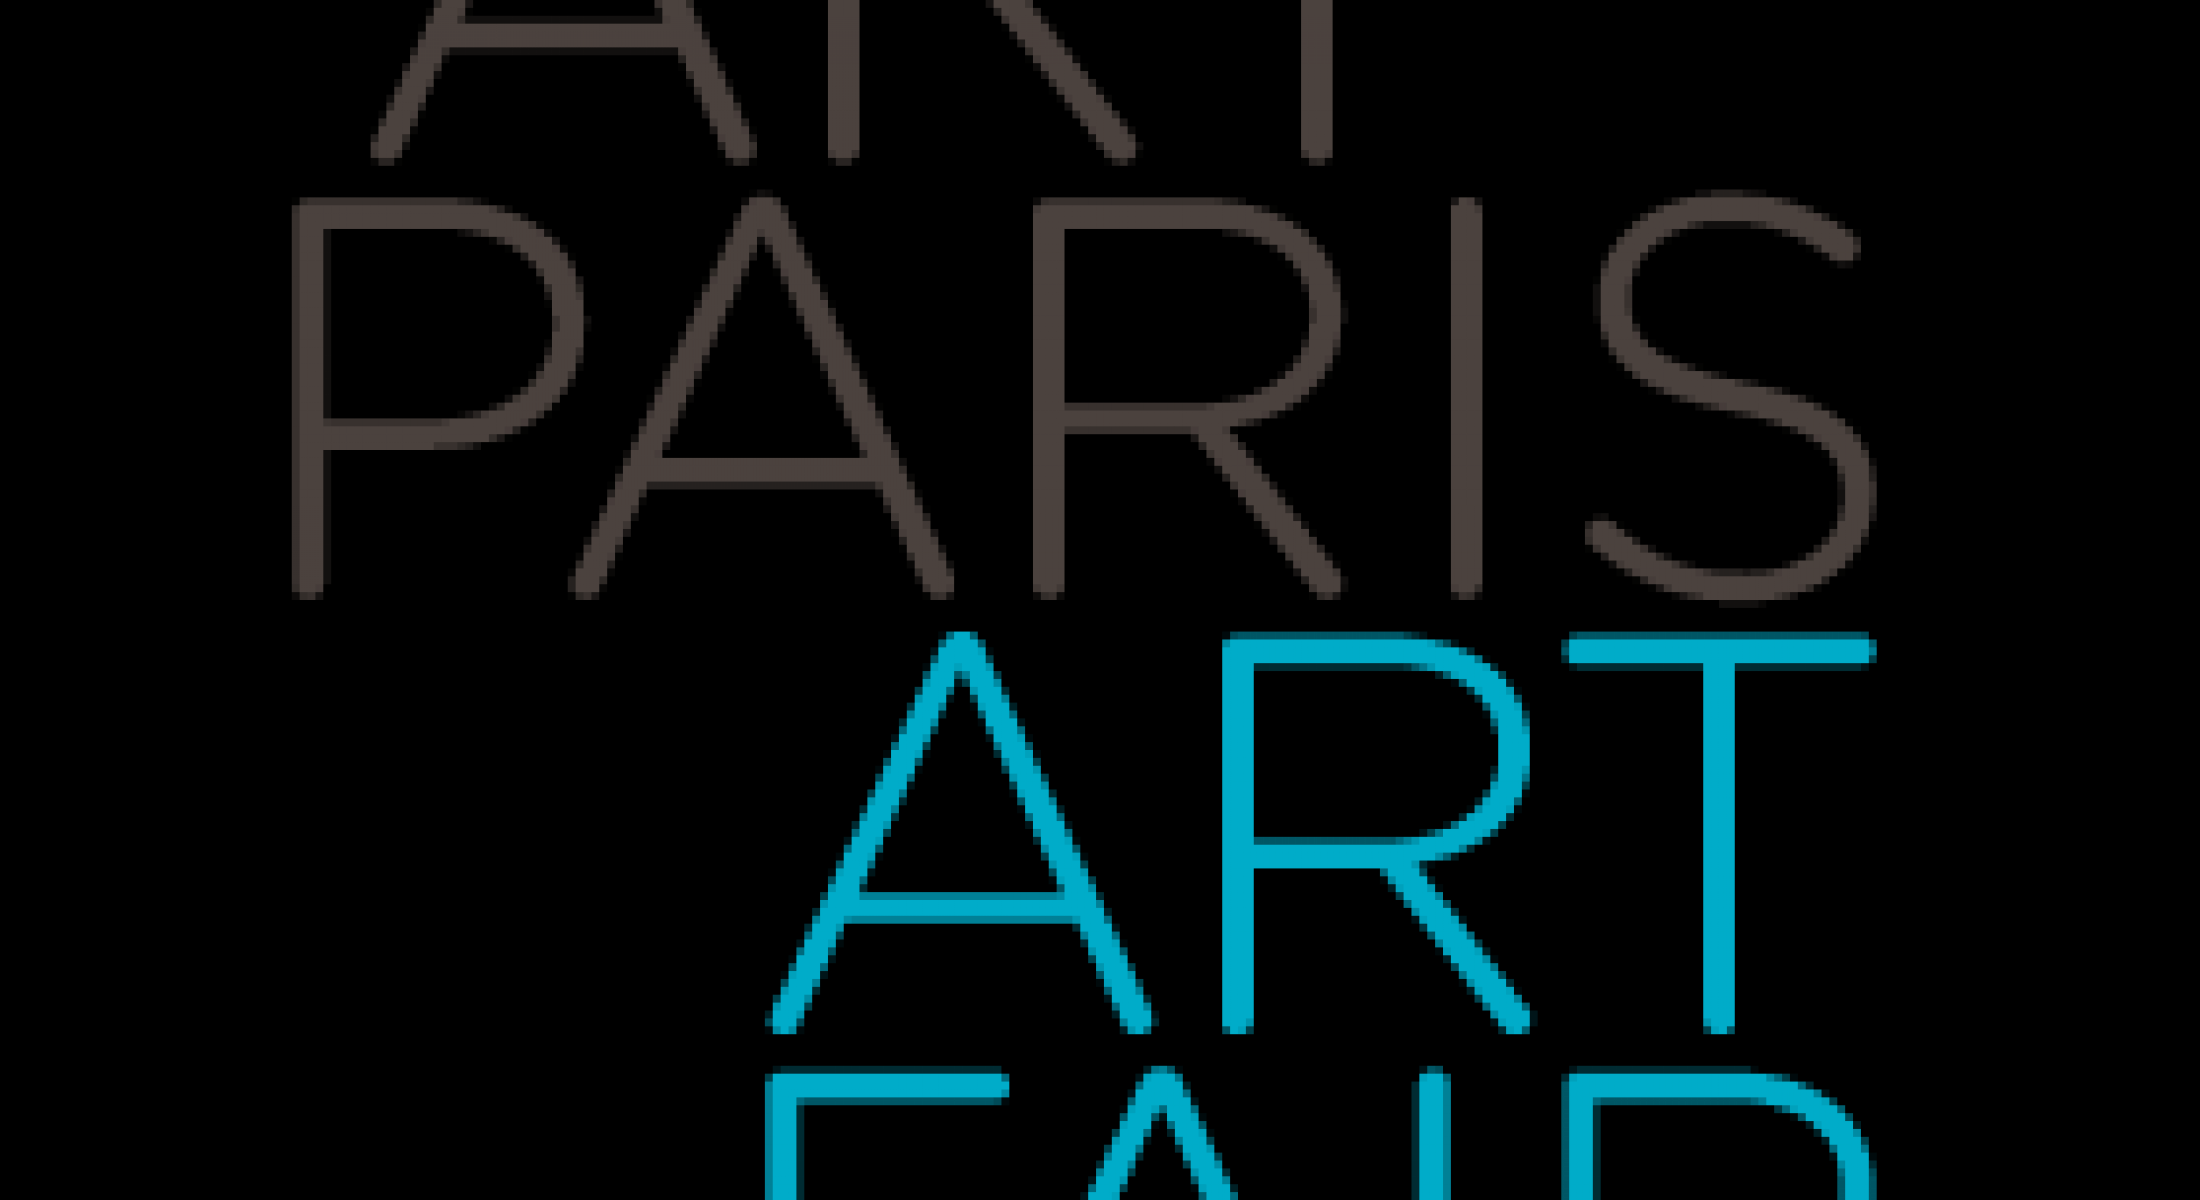 Art Paris 2018 - Dossier de presse